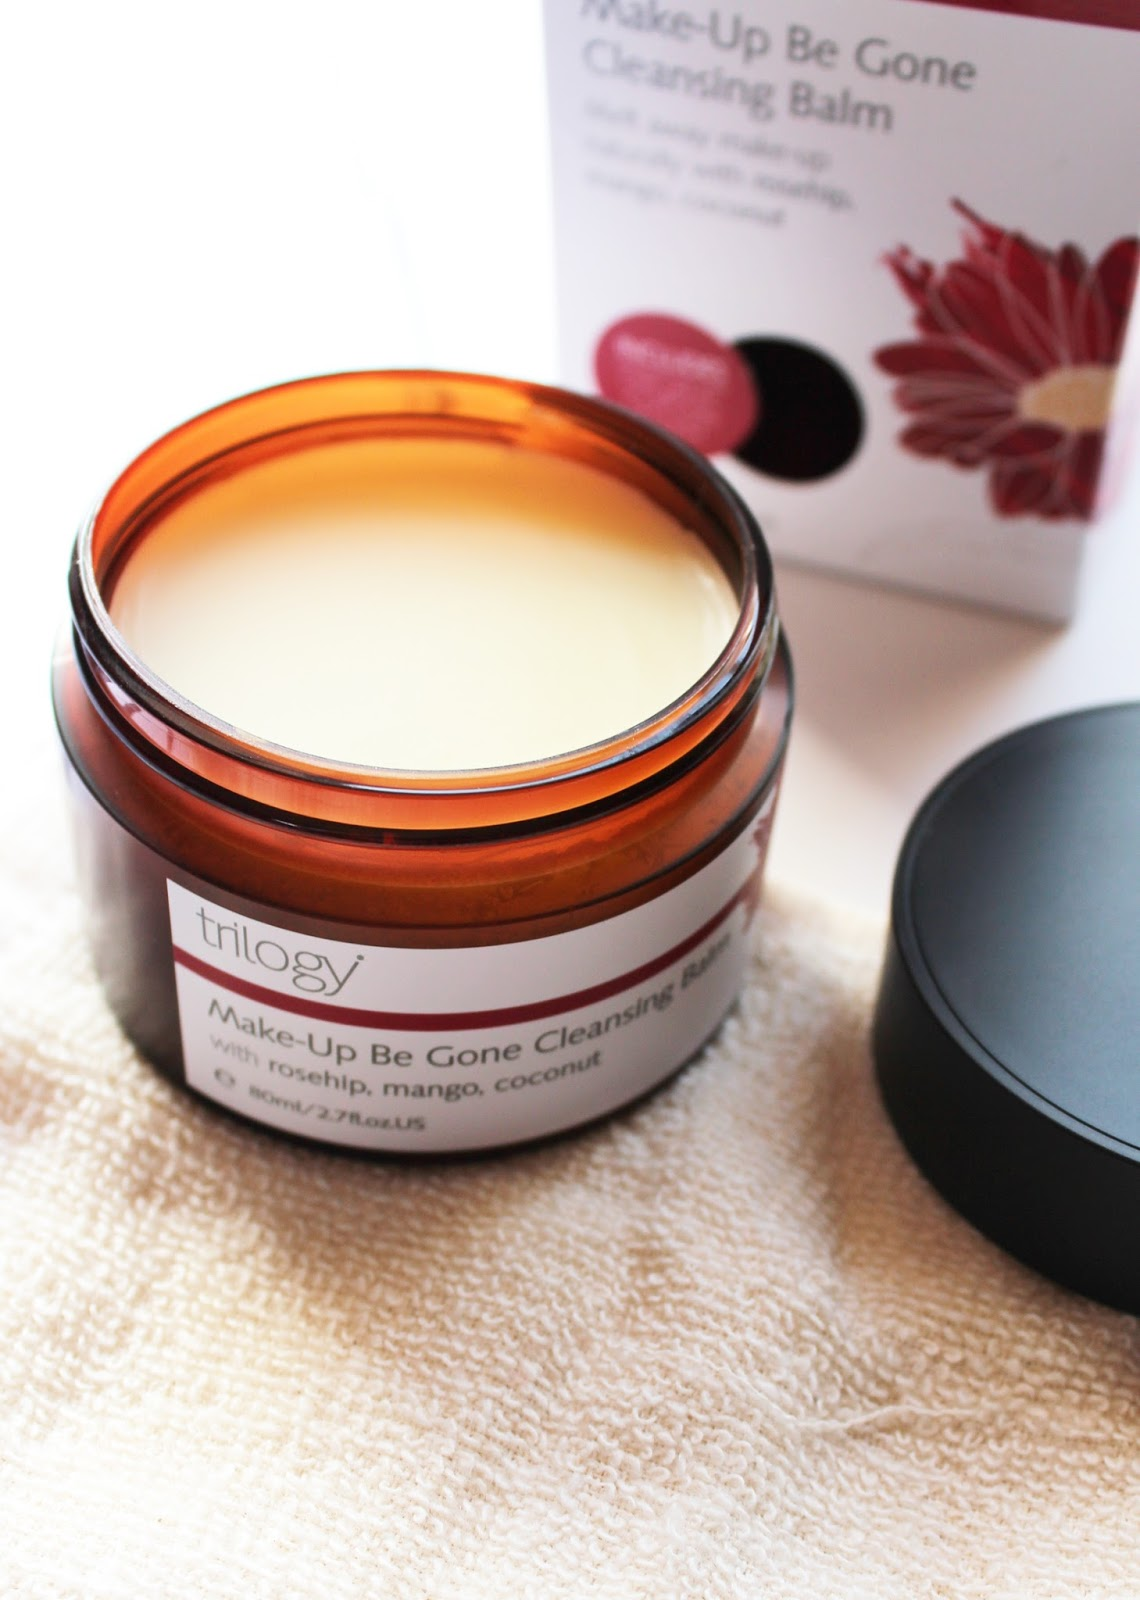 TRILOGY | Make-Up Be Gone Cleansing Balm Review - CassandraMyee